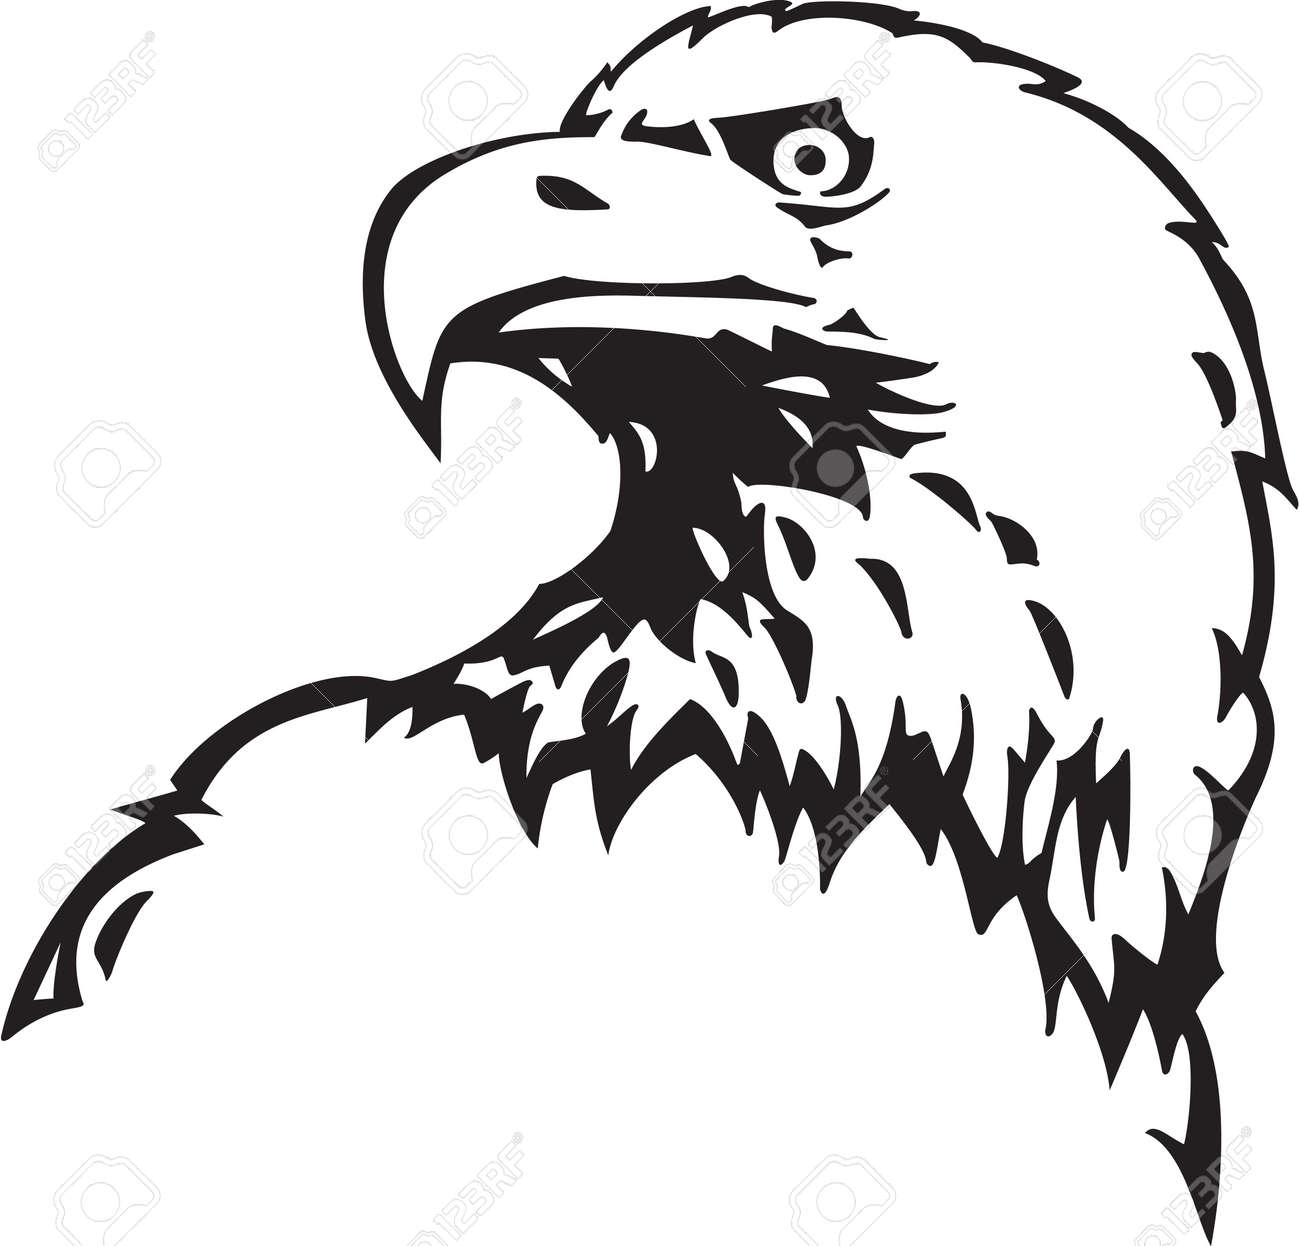 26,278 Eagle Stock Vector Illustration And Royalty Free Eagle Clipart